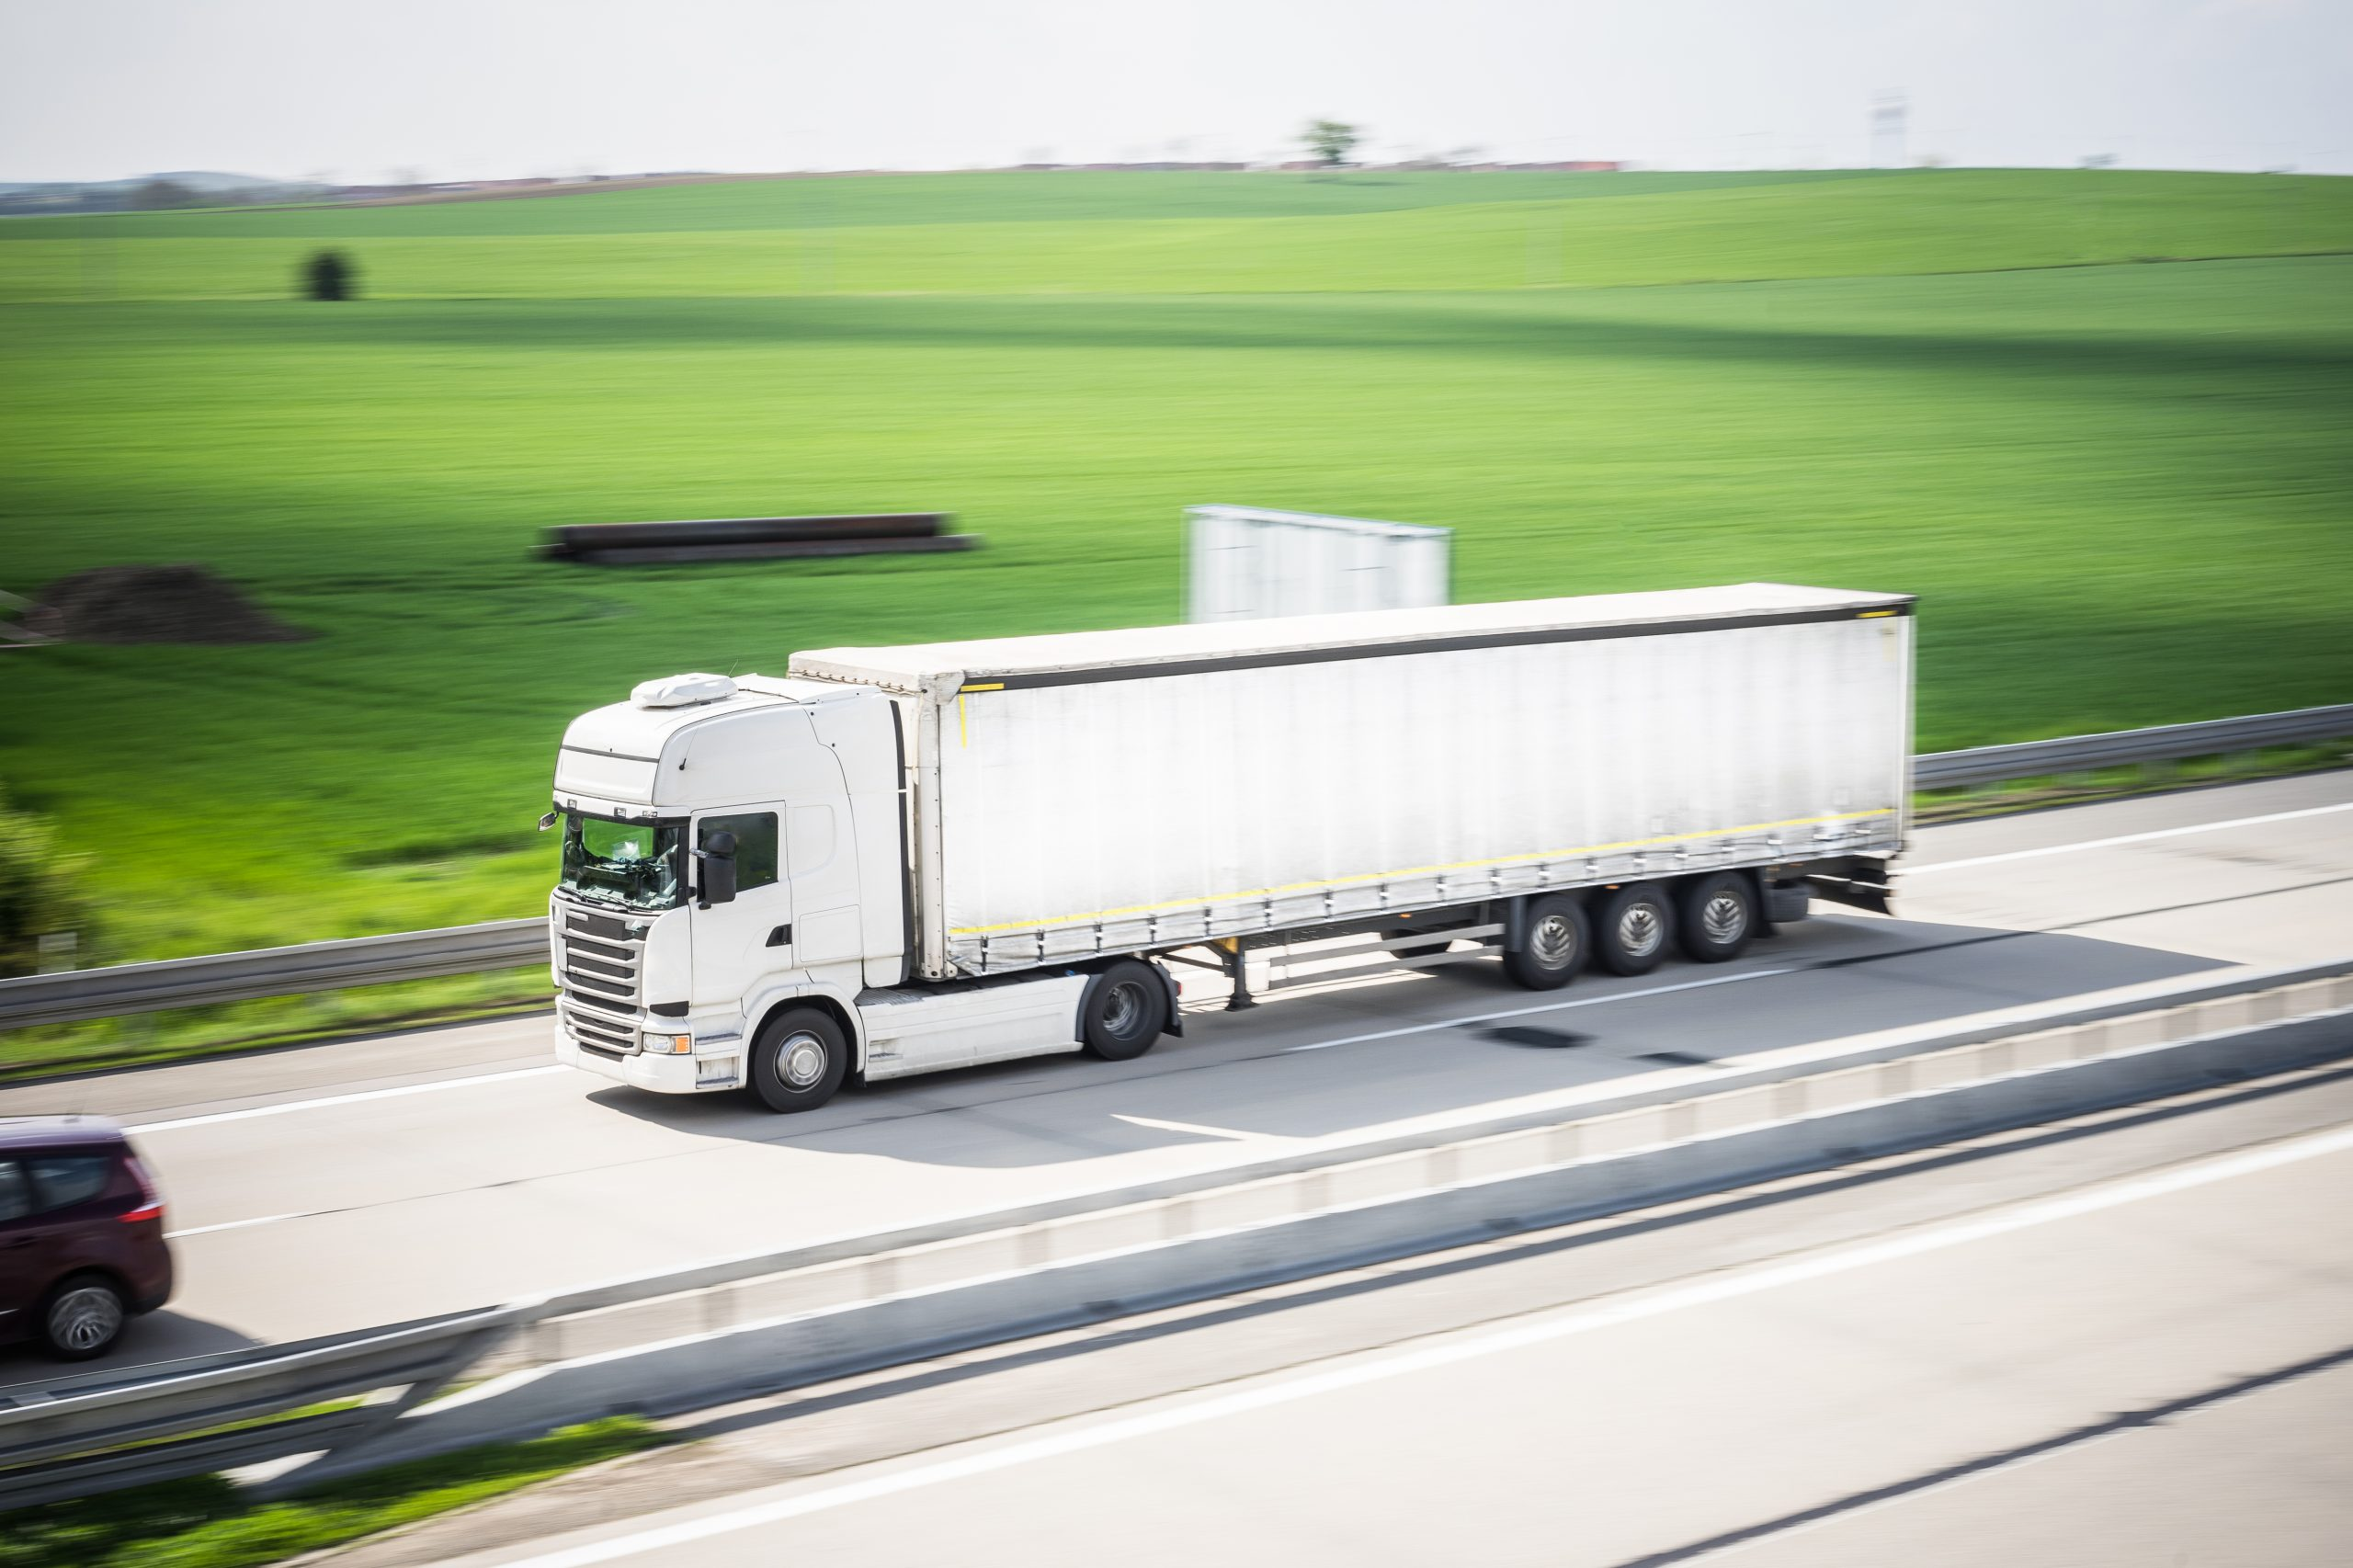 white-tir-truck-in-motion-driving-on-highway-picjumbo-com